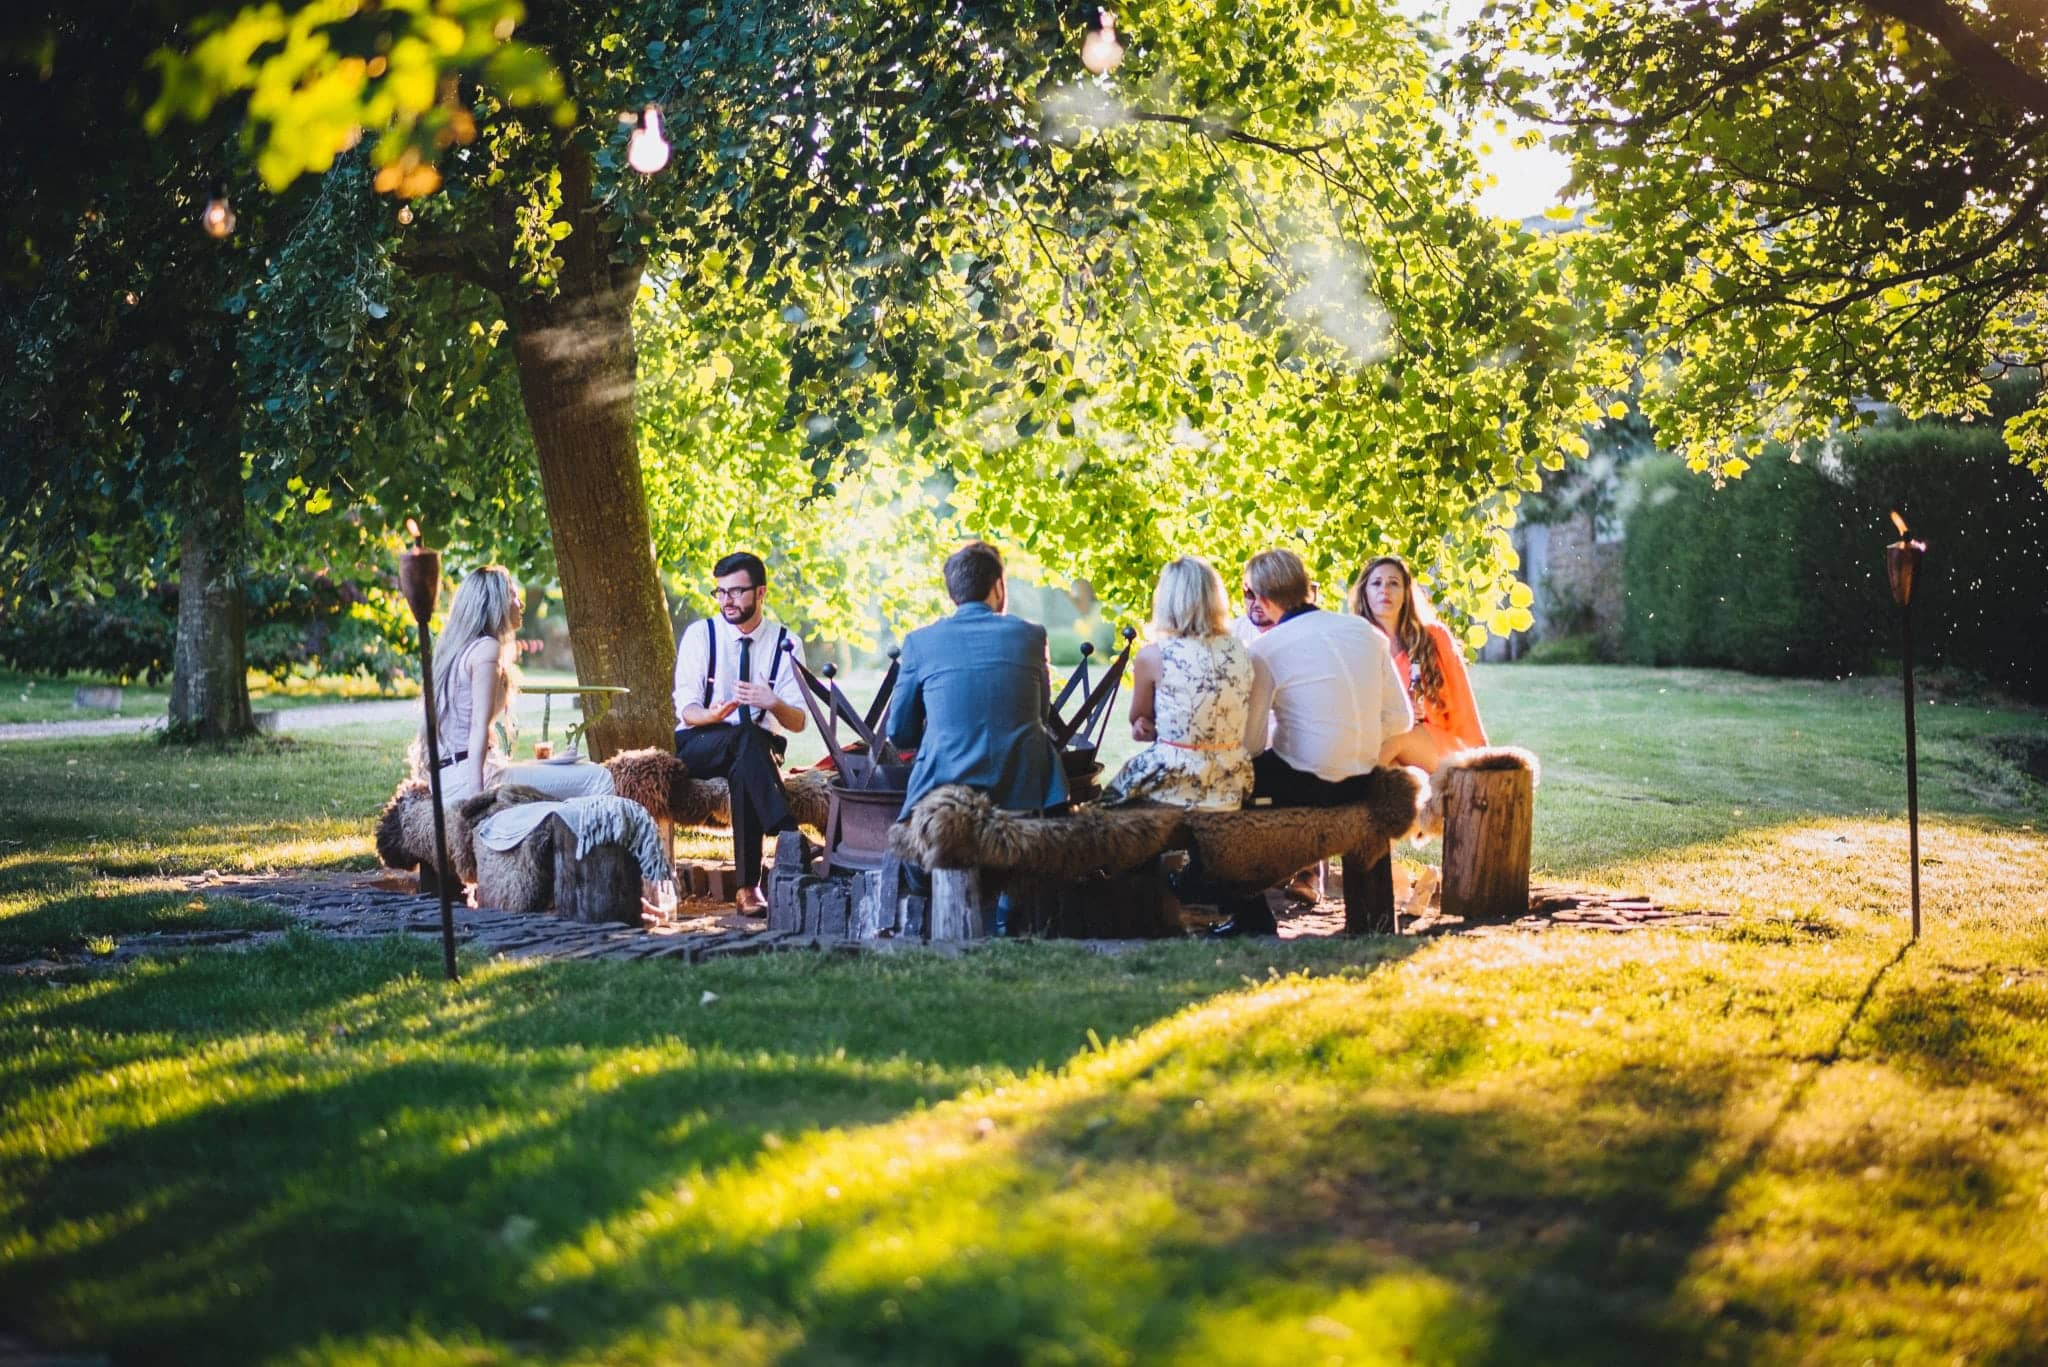 Guests sit around fire pit at Dewsall Court in the sunshine